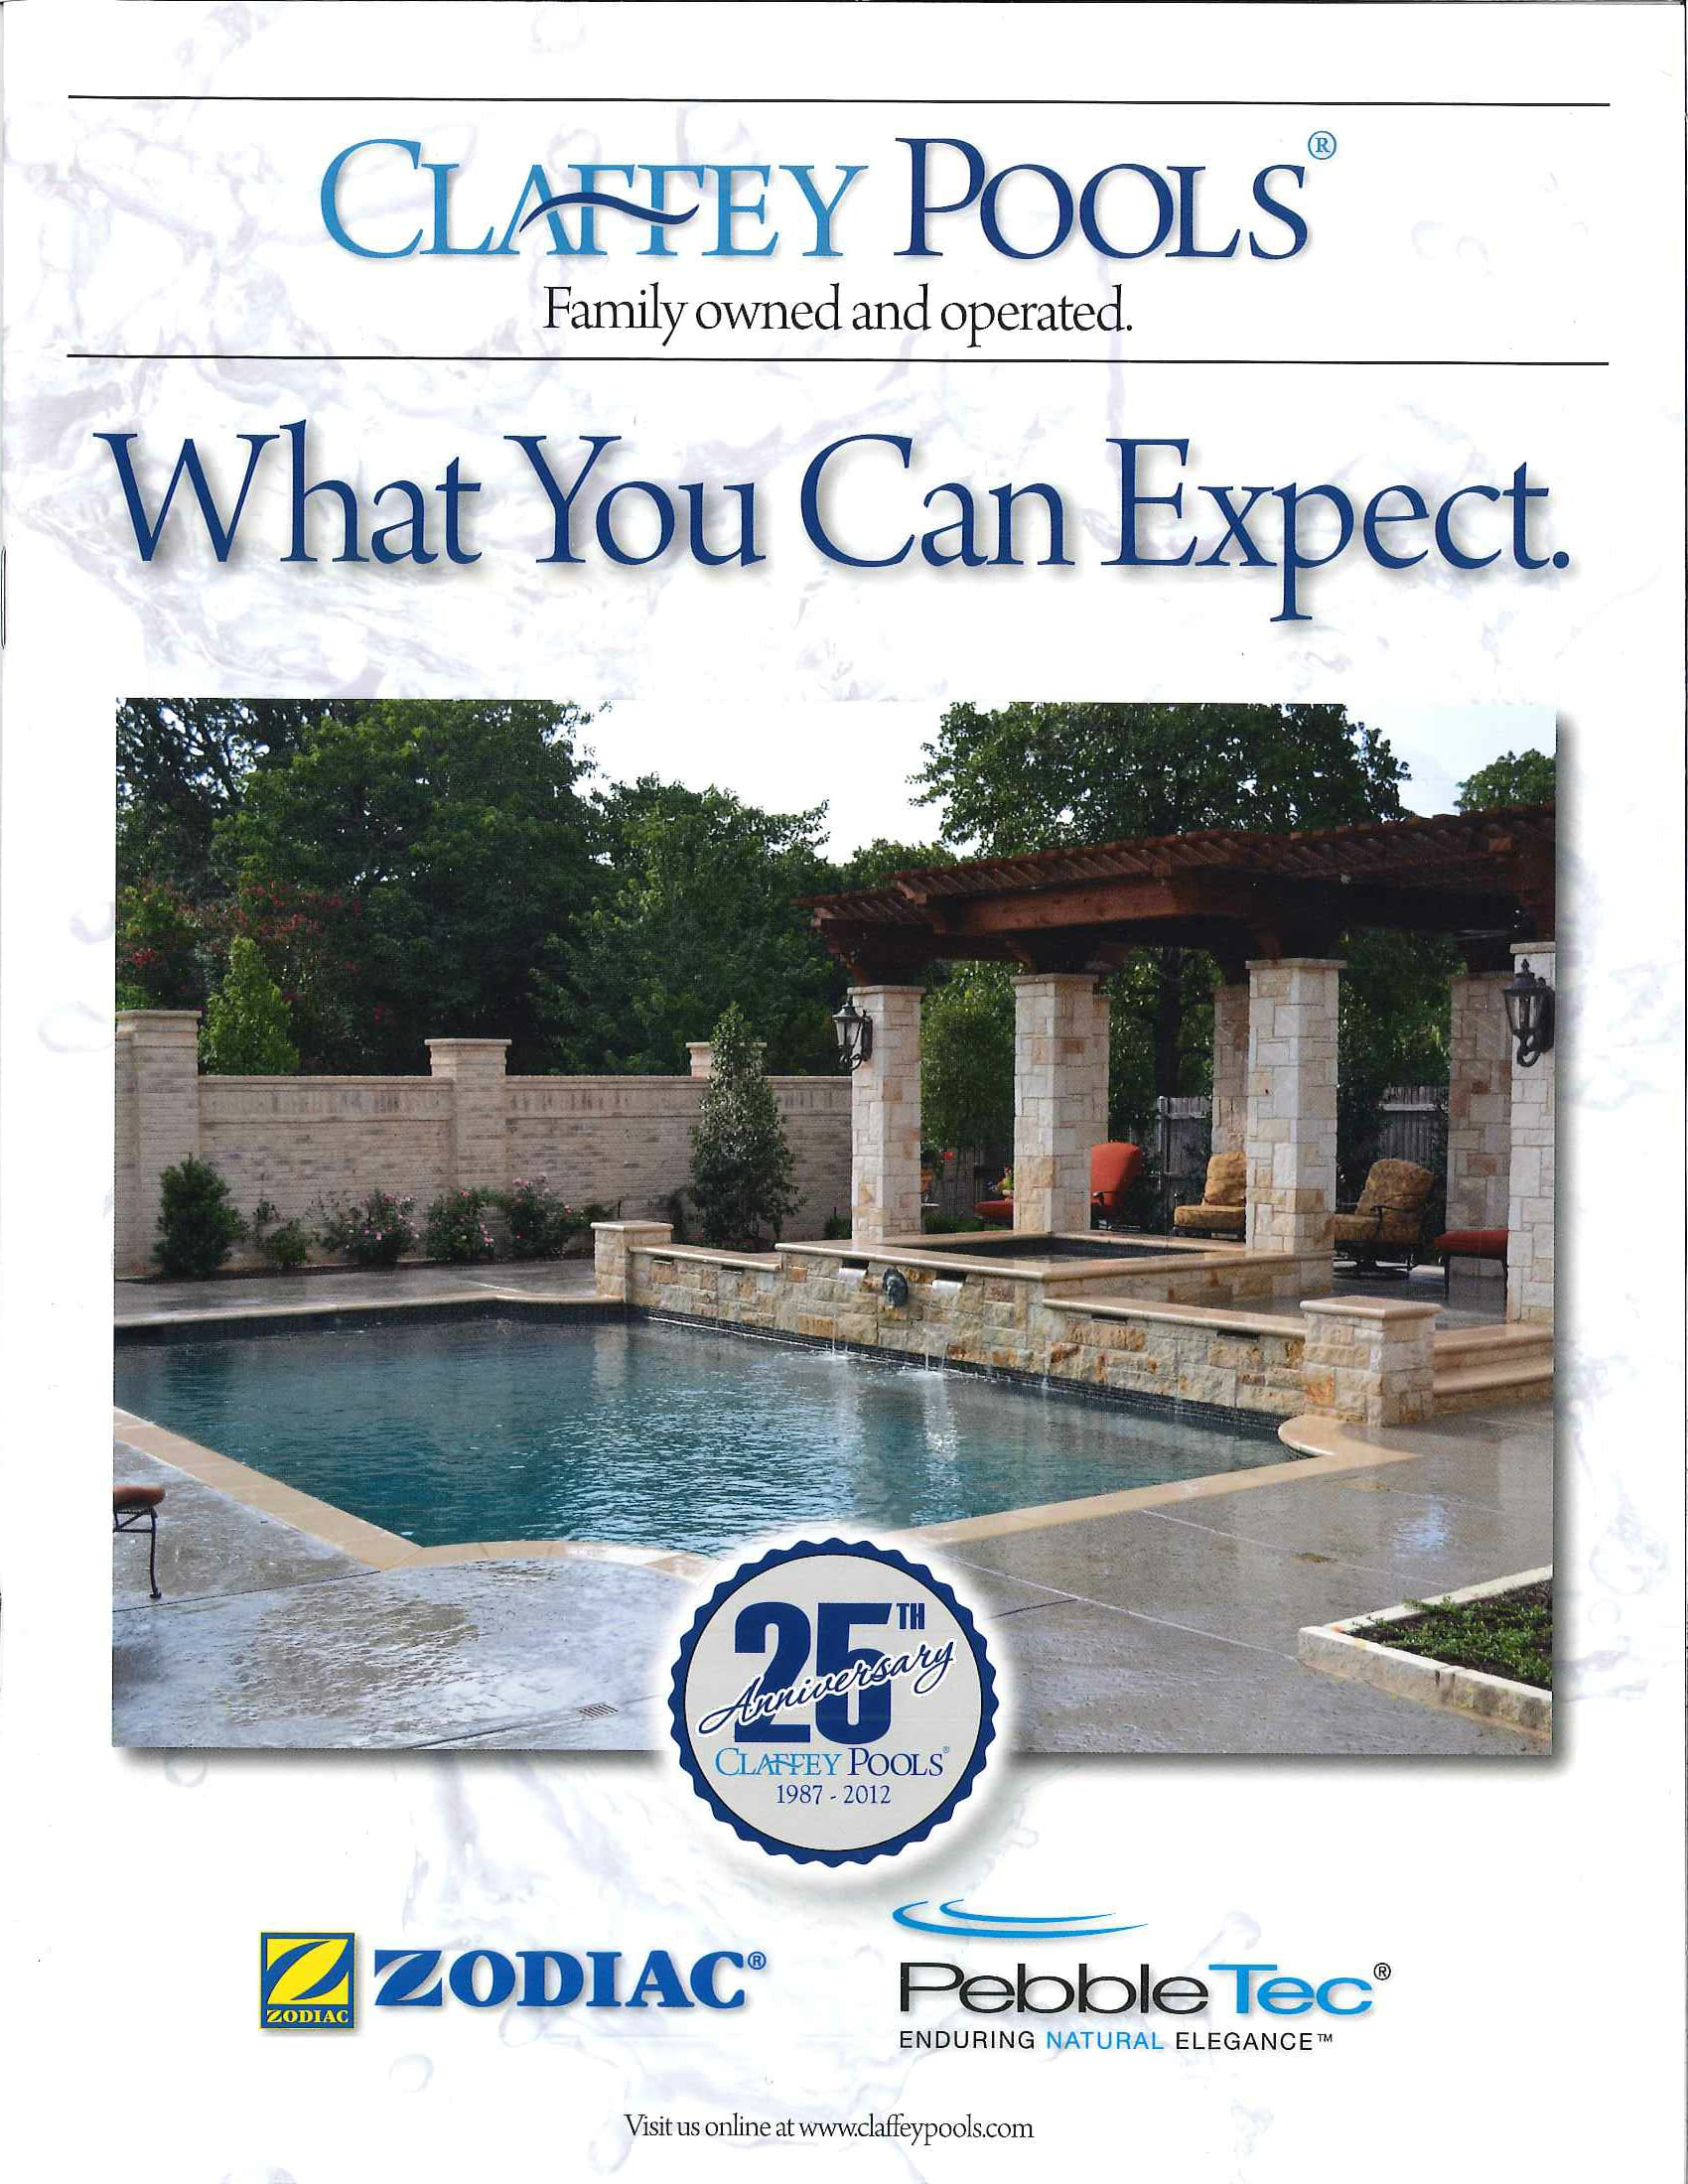 2012 - Claffey Pools celebrated their 6,000th pool during their 25th year in business.